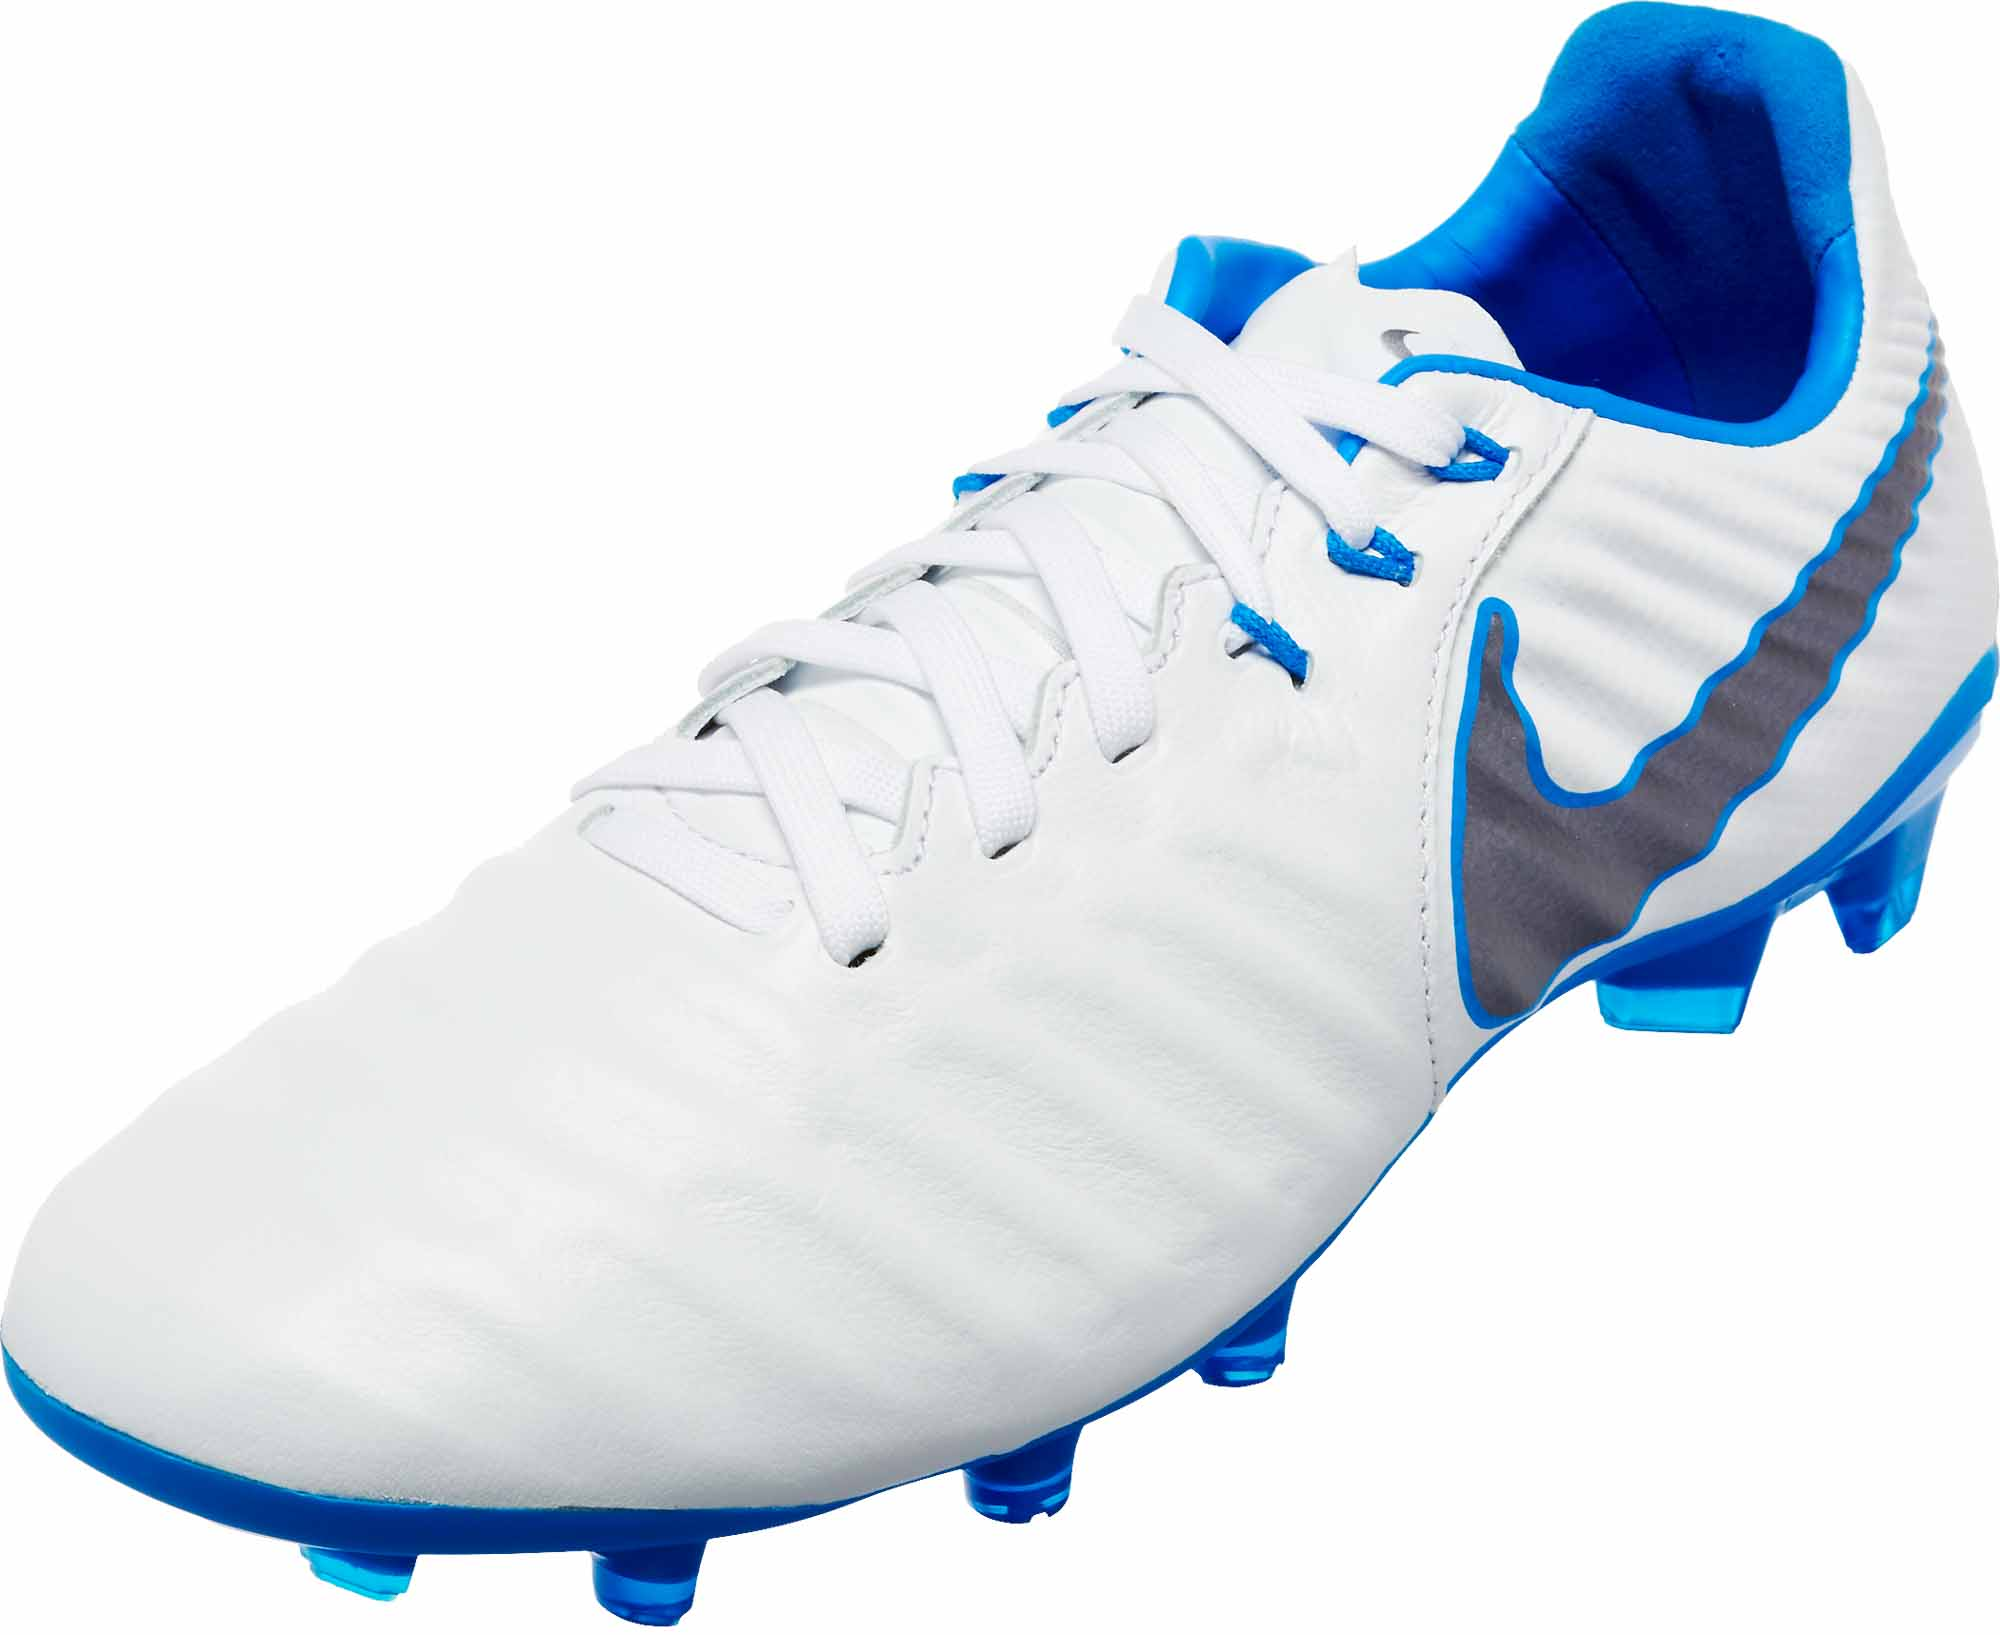 sports shoes 728d3 0bb3e Nike Tiempo Legend VII Elite FG – Youth – White Metallic Cool Grey Blue